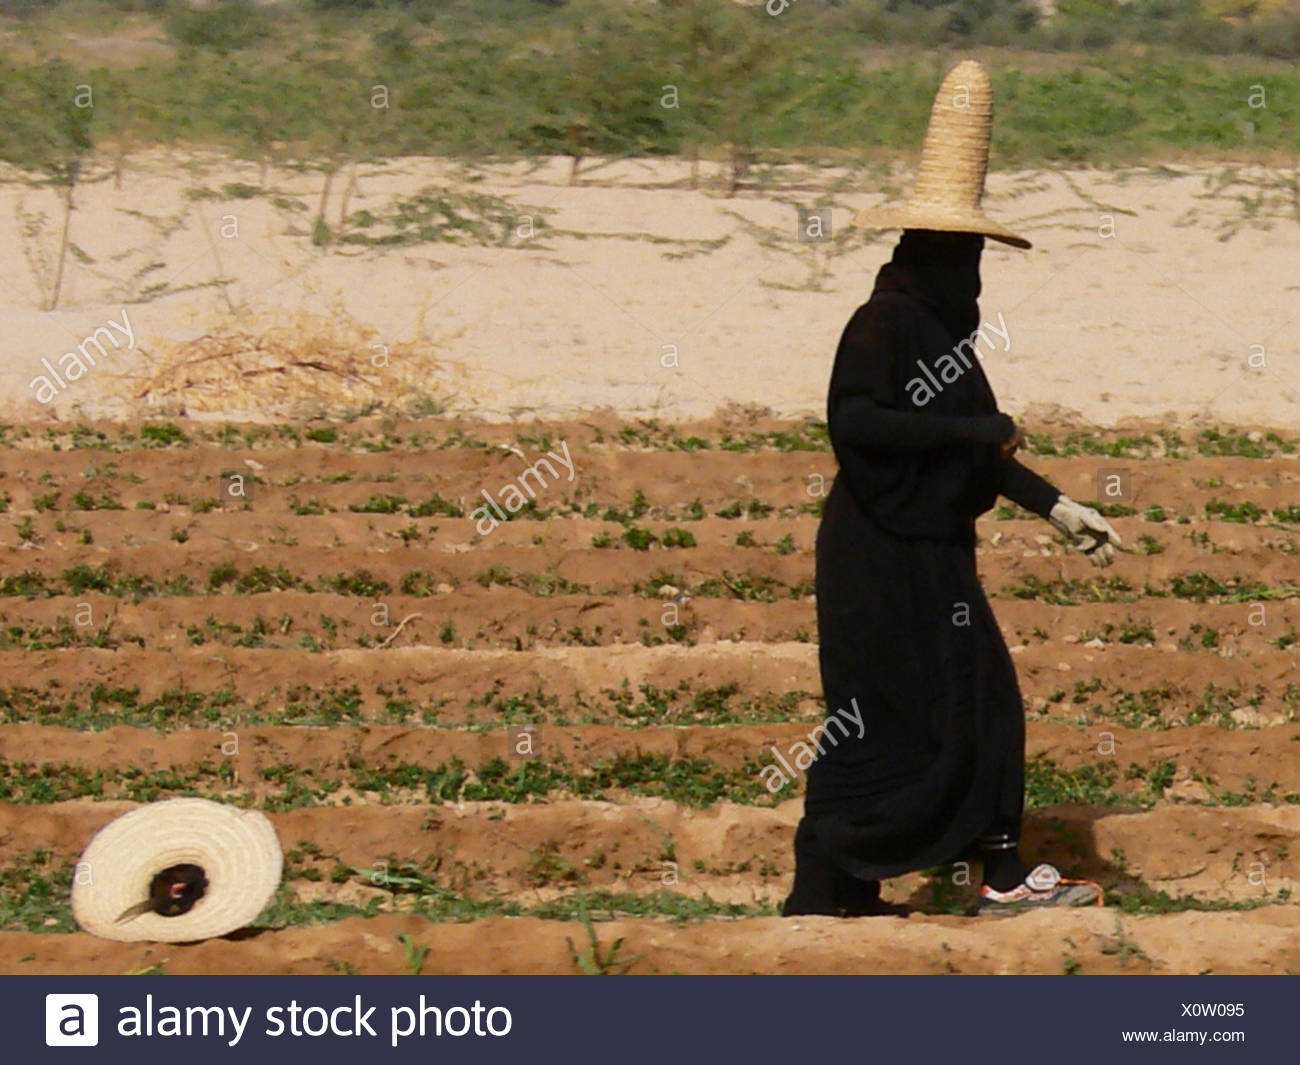 veiled woman with traditional straw hat on field, Yemen - Stock Image